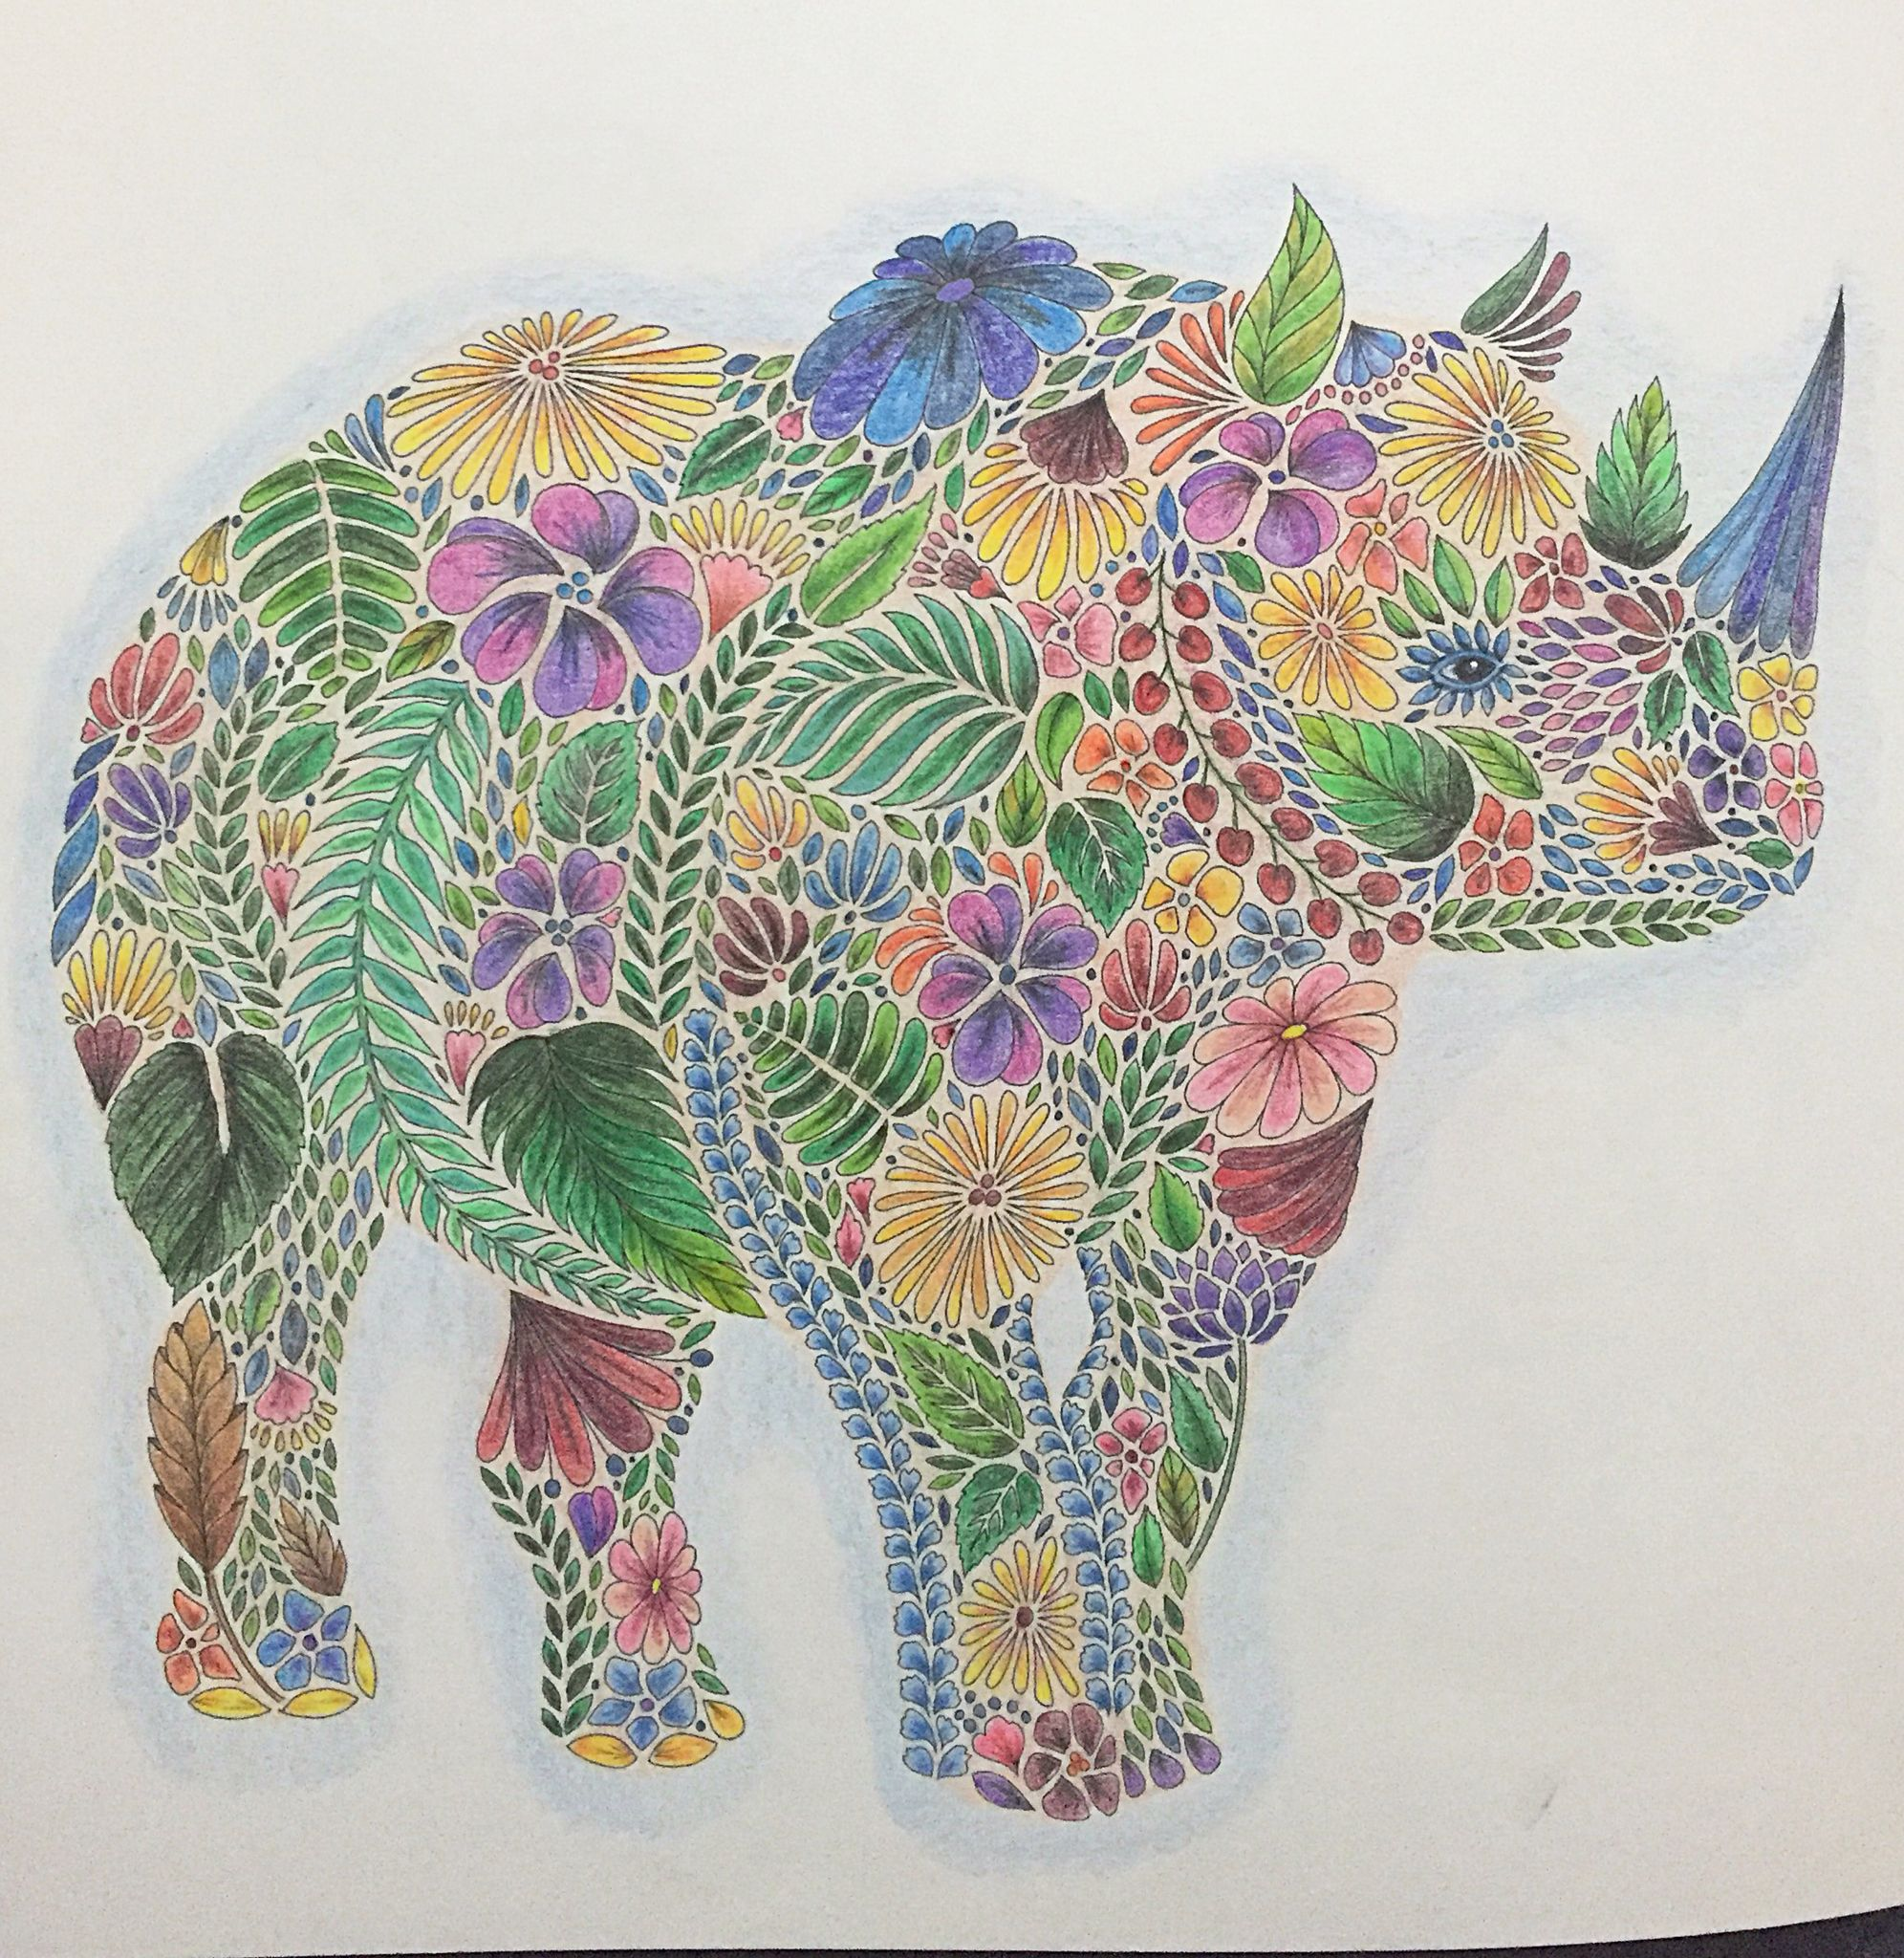 My First Colored Page Ms Rhino In New Millie Marotta Book Used Prismacolor Pencils The Small 24 Pack